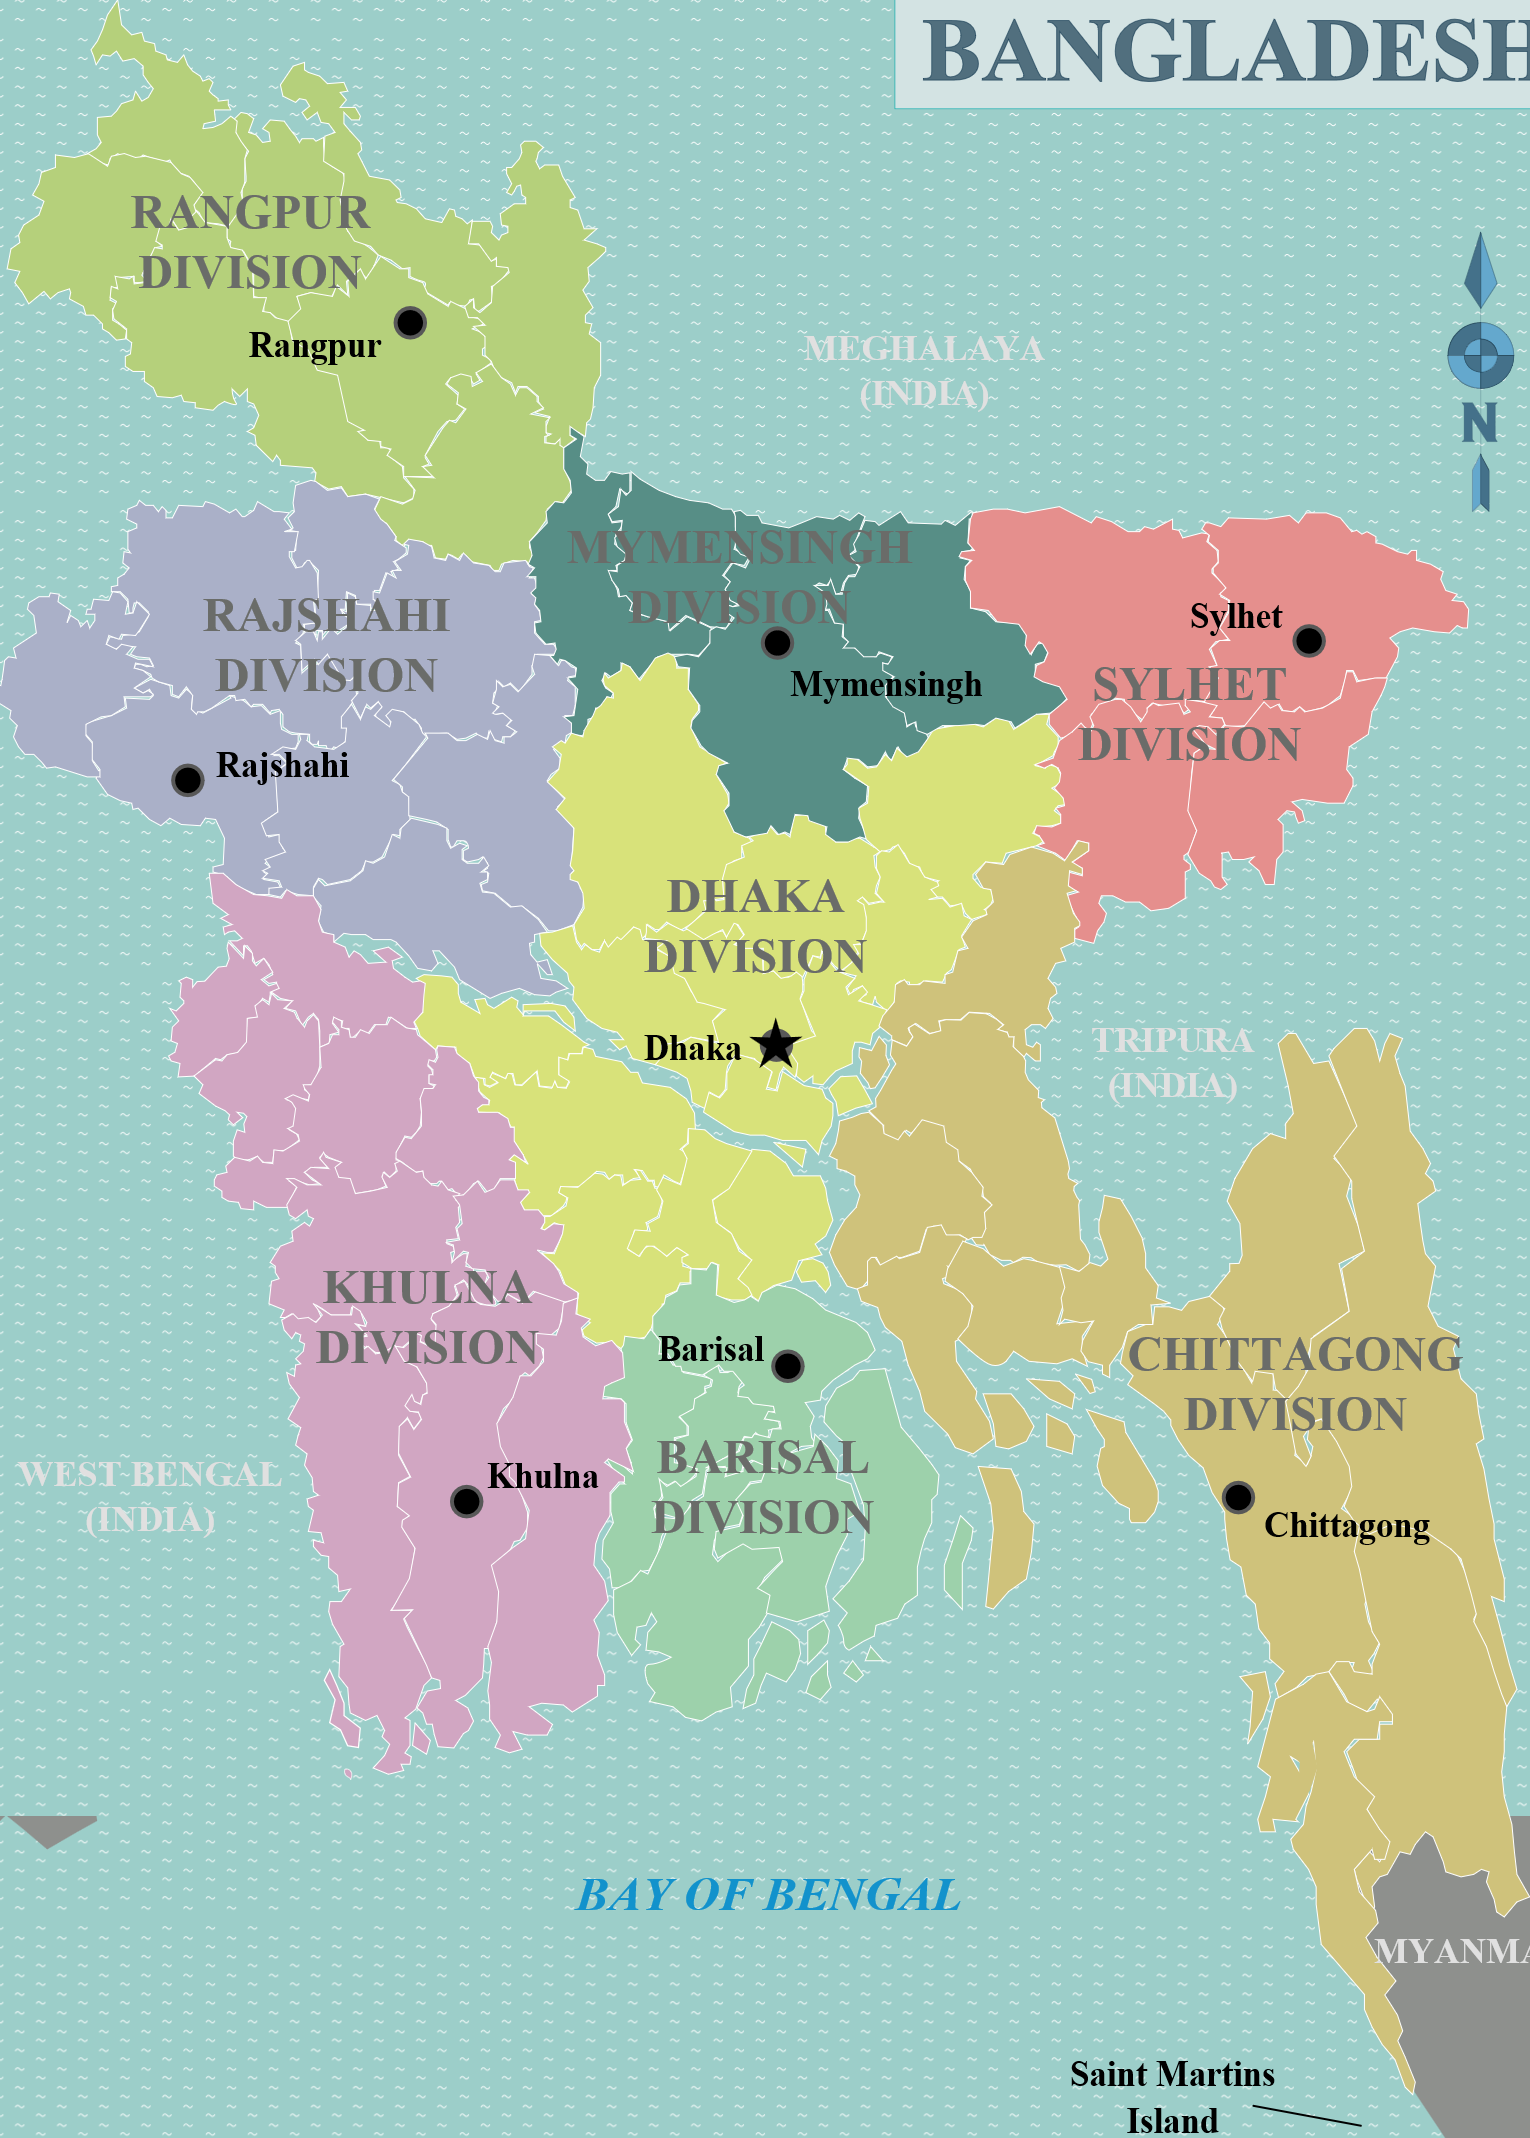 Large Map of Bangladesh